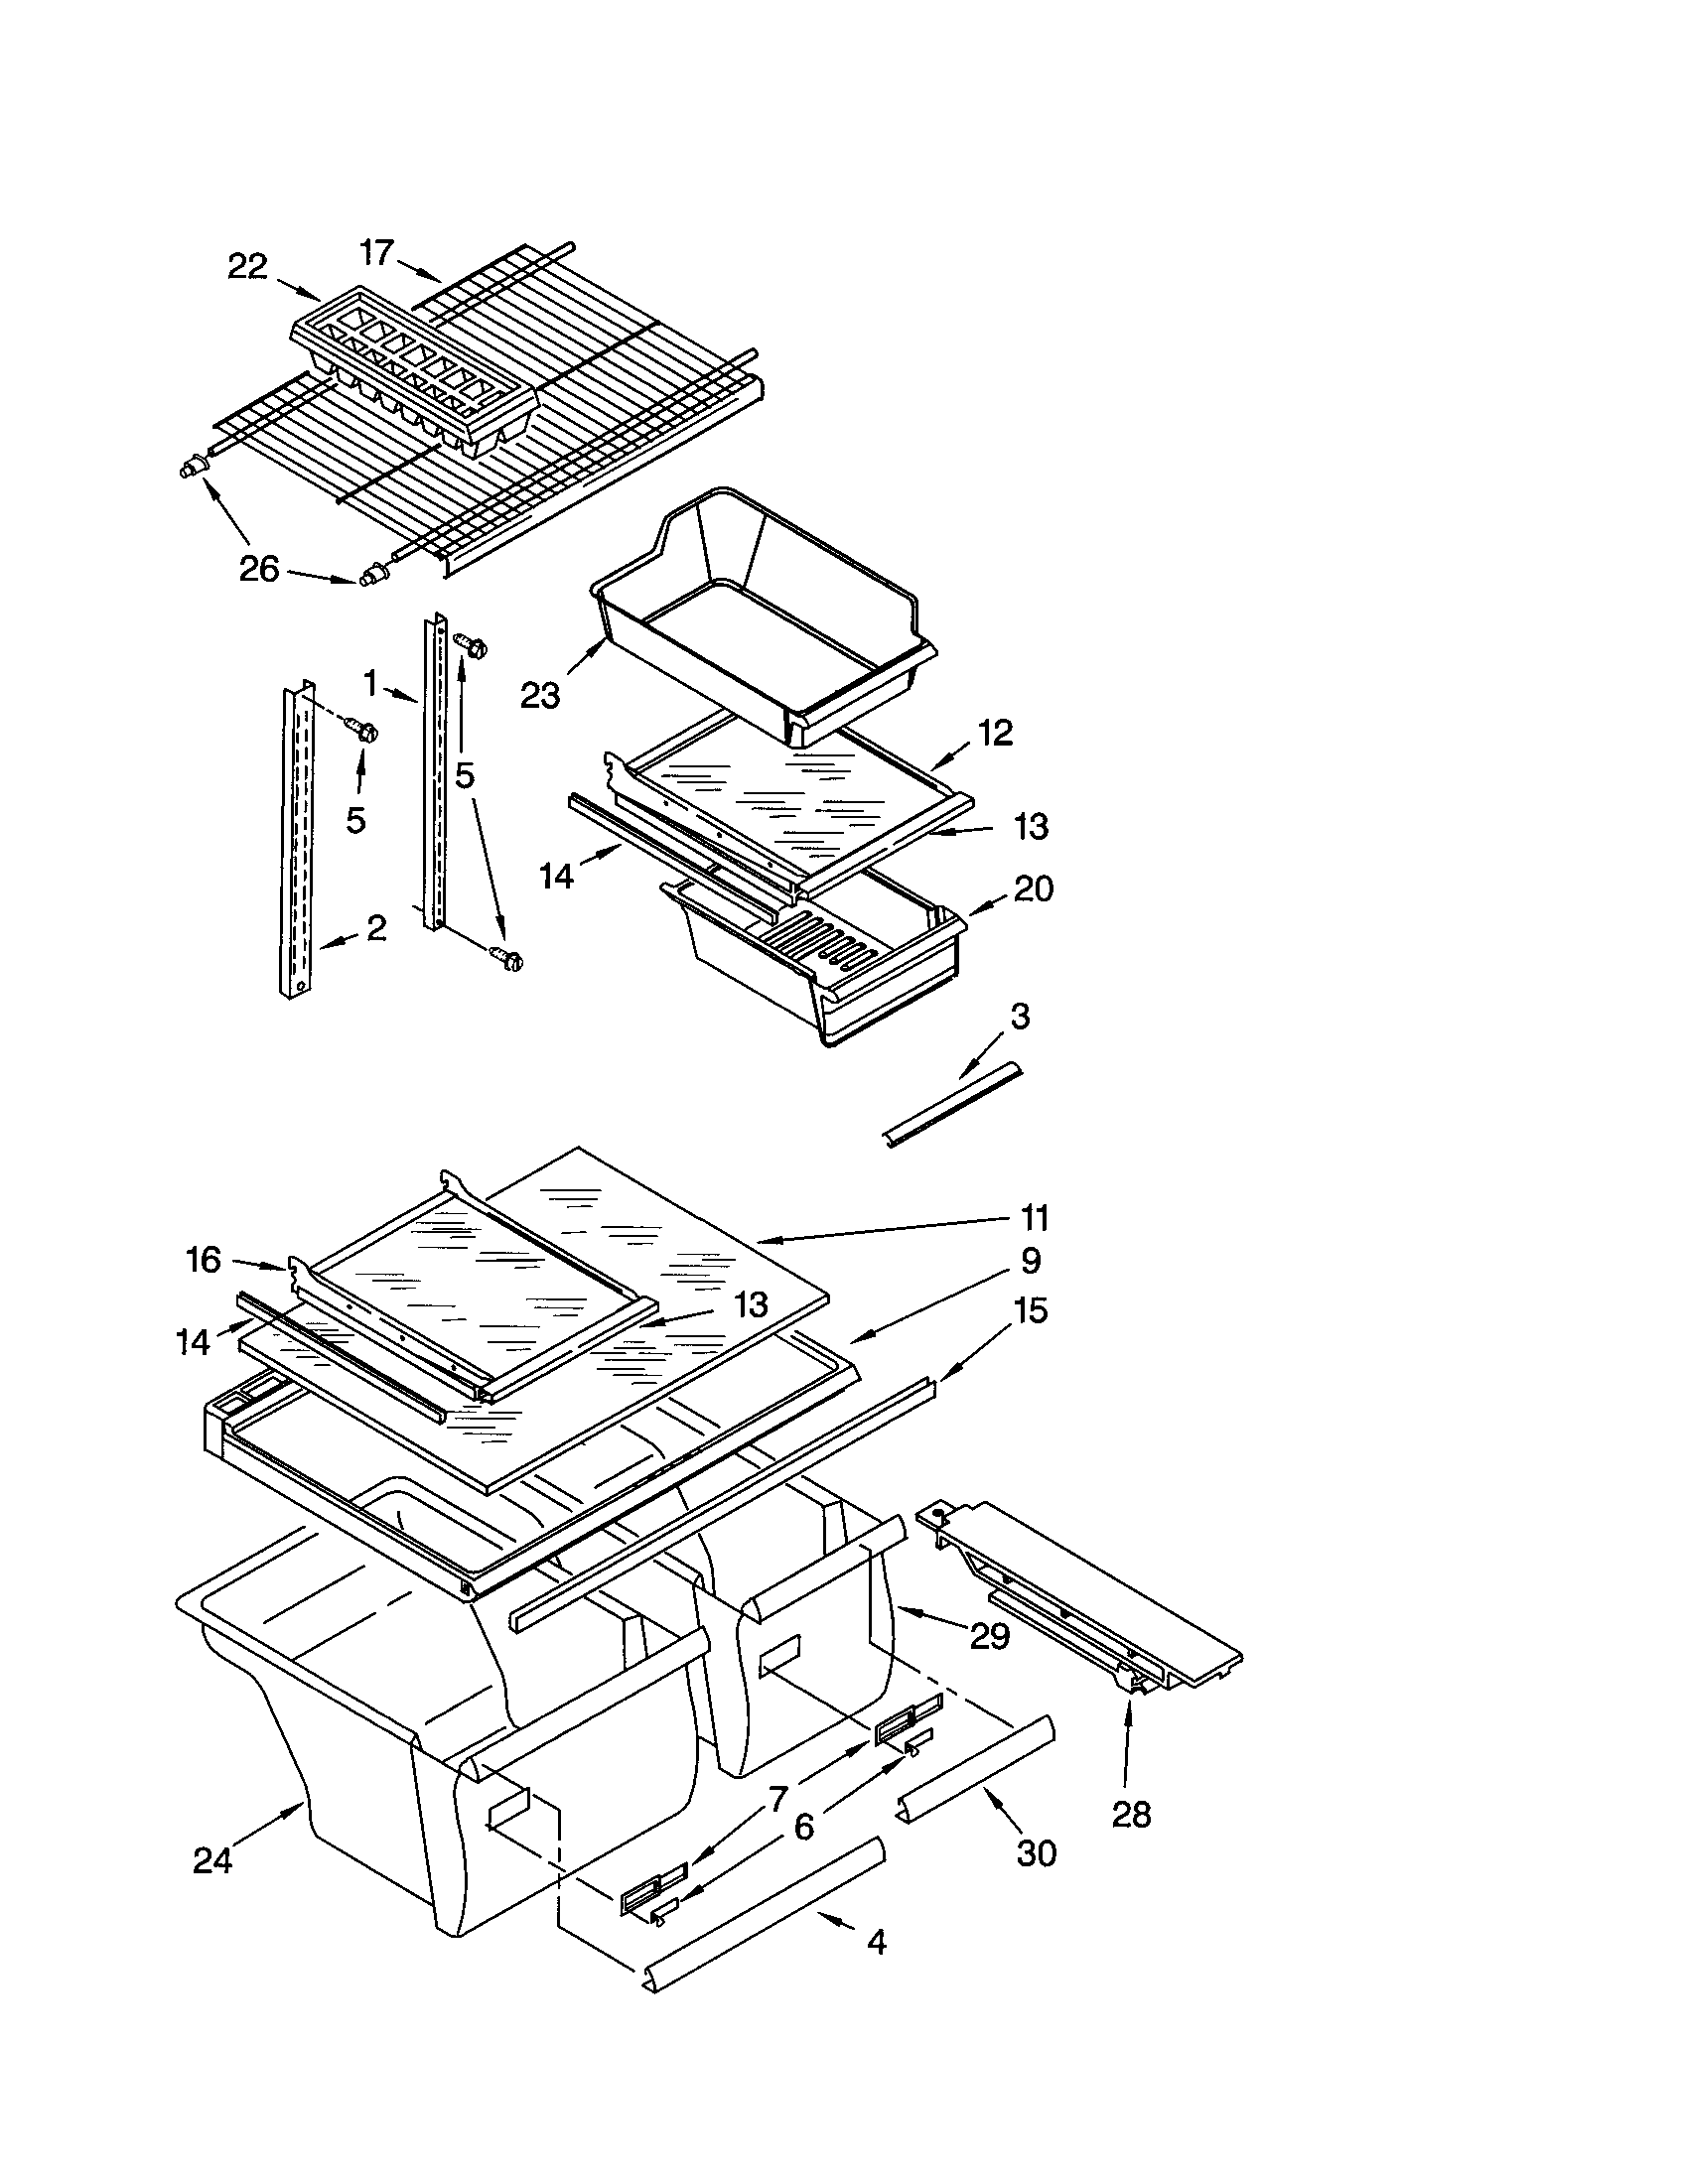 SHELF Diagram & Parts List for Model 10660852991 Kenmore